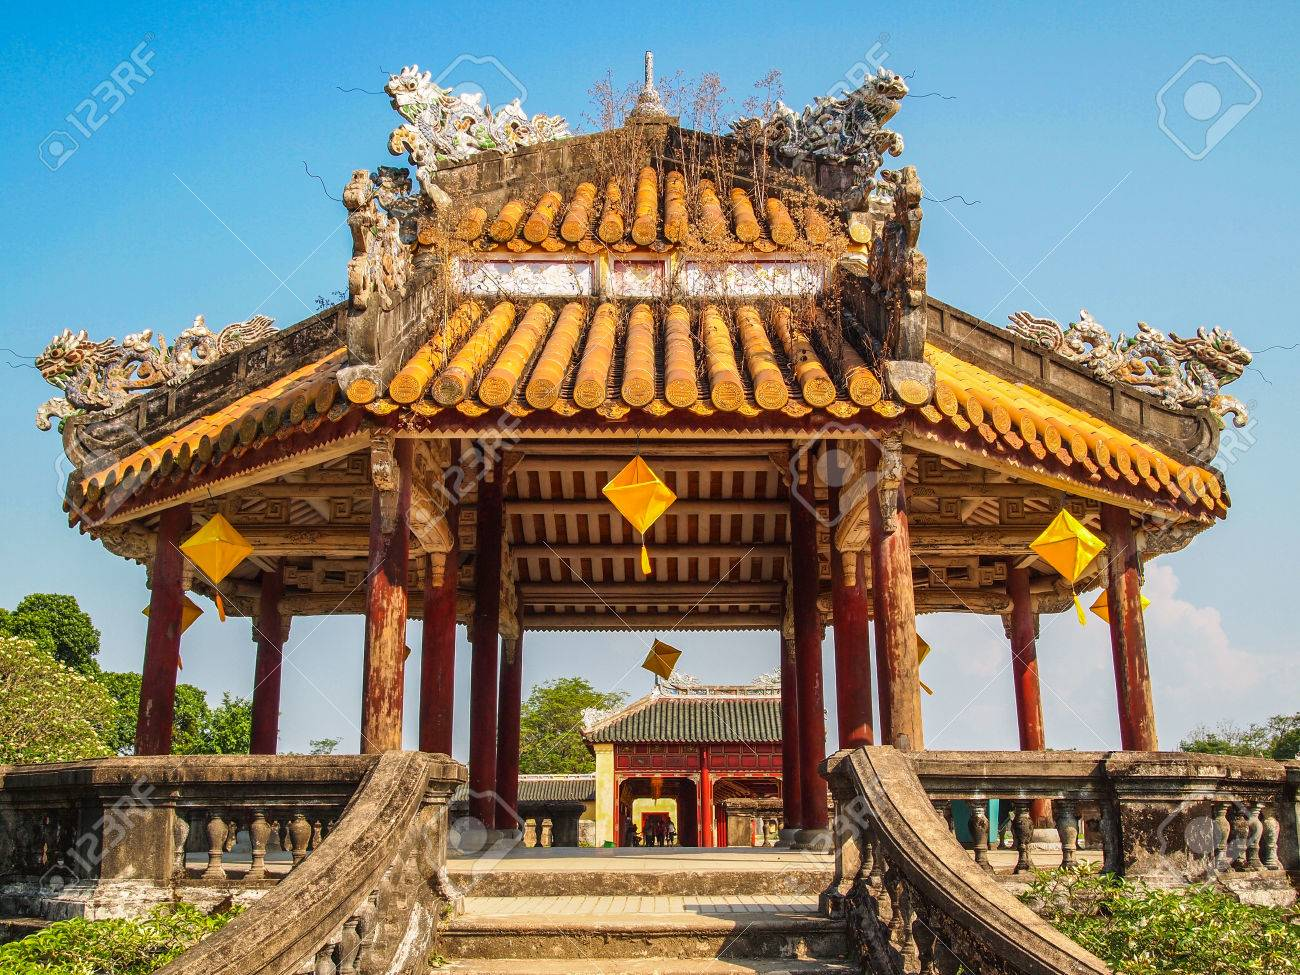 Pagoda At Forbidden Purple City Hue Vietnam Stock Photo Picture And Royalty Free Image Image 36923873